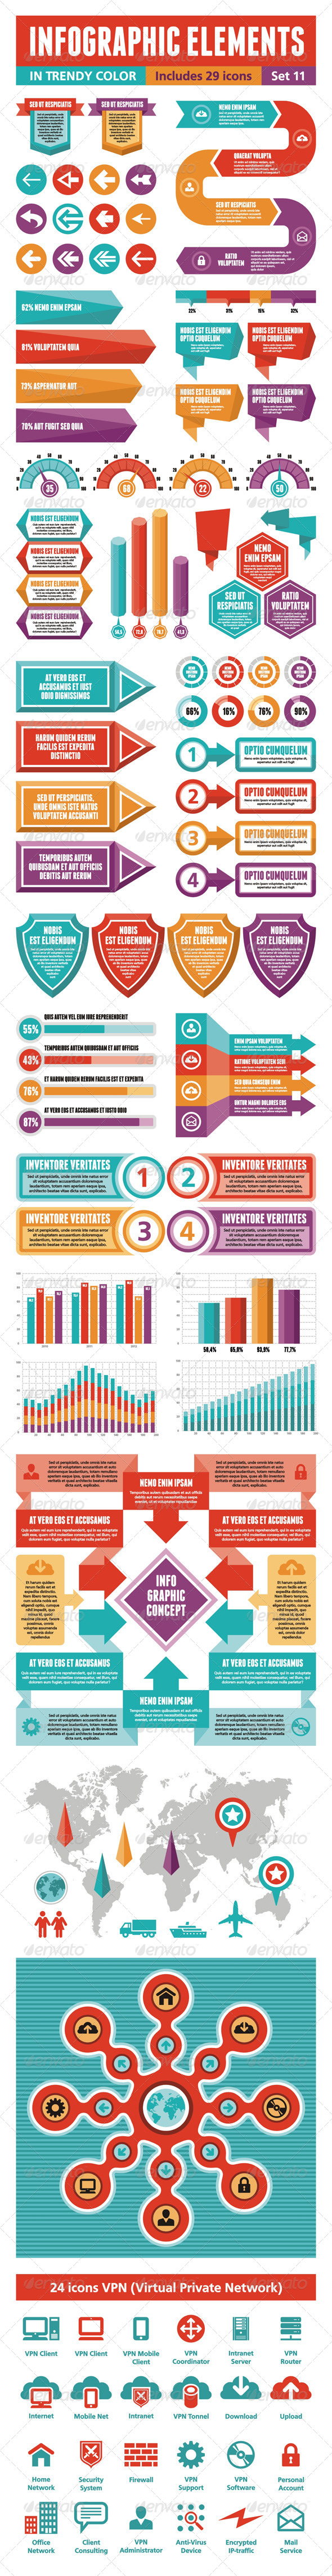 GraphicRiver Infographic Elements 11 4263252